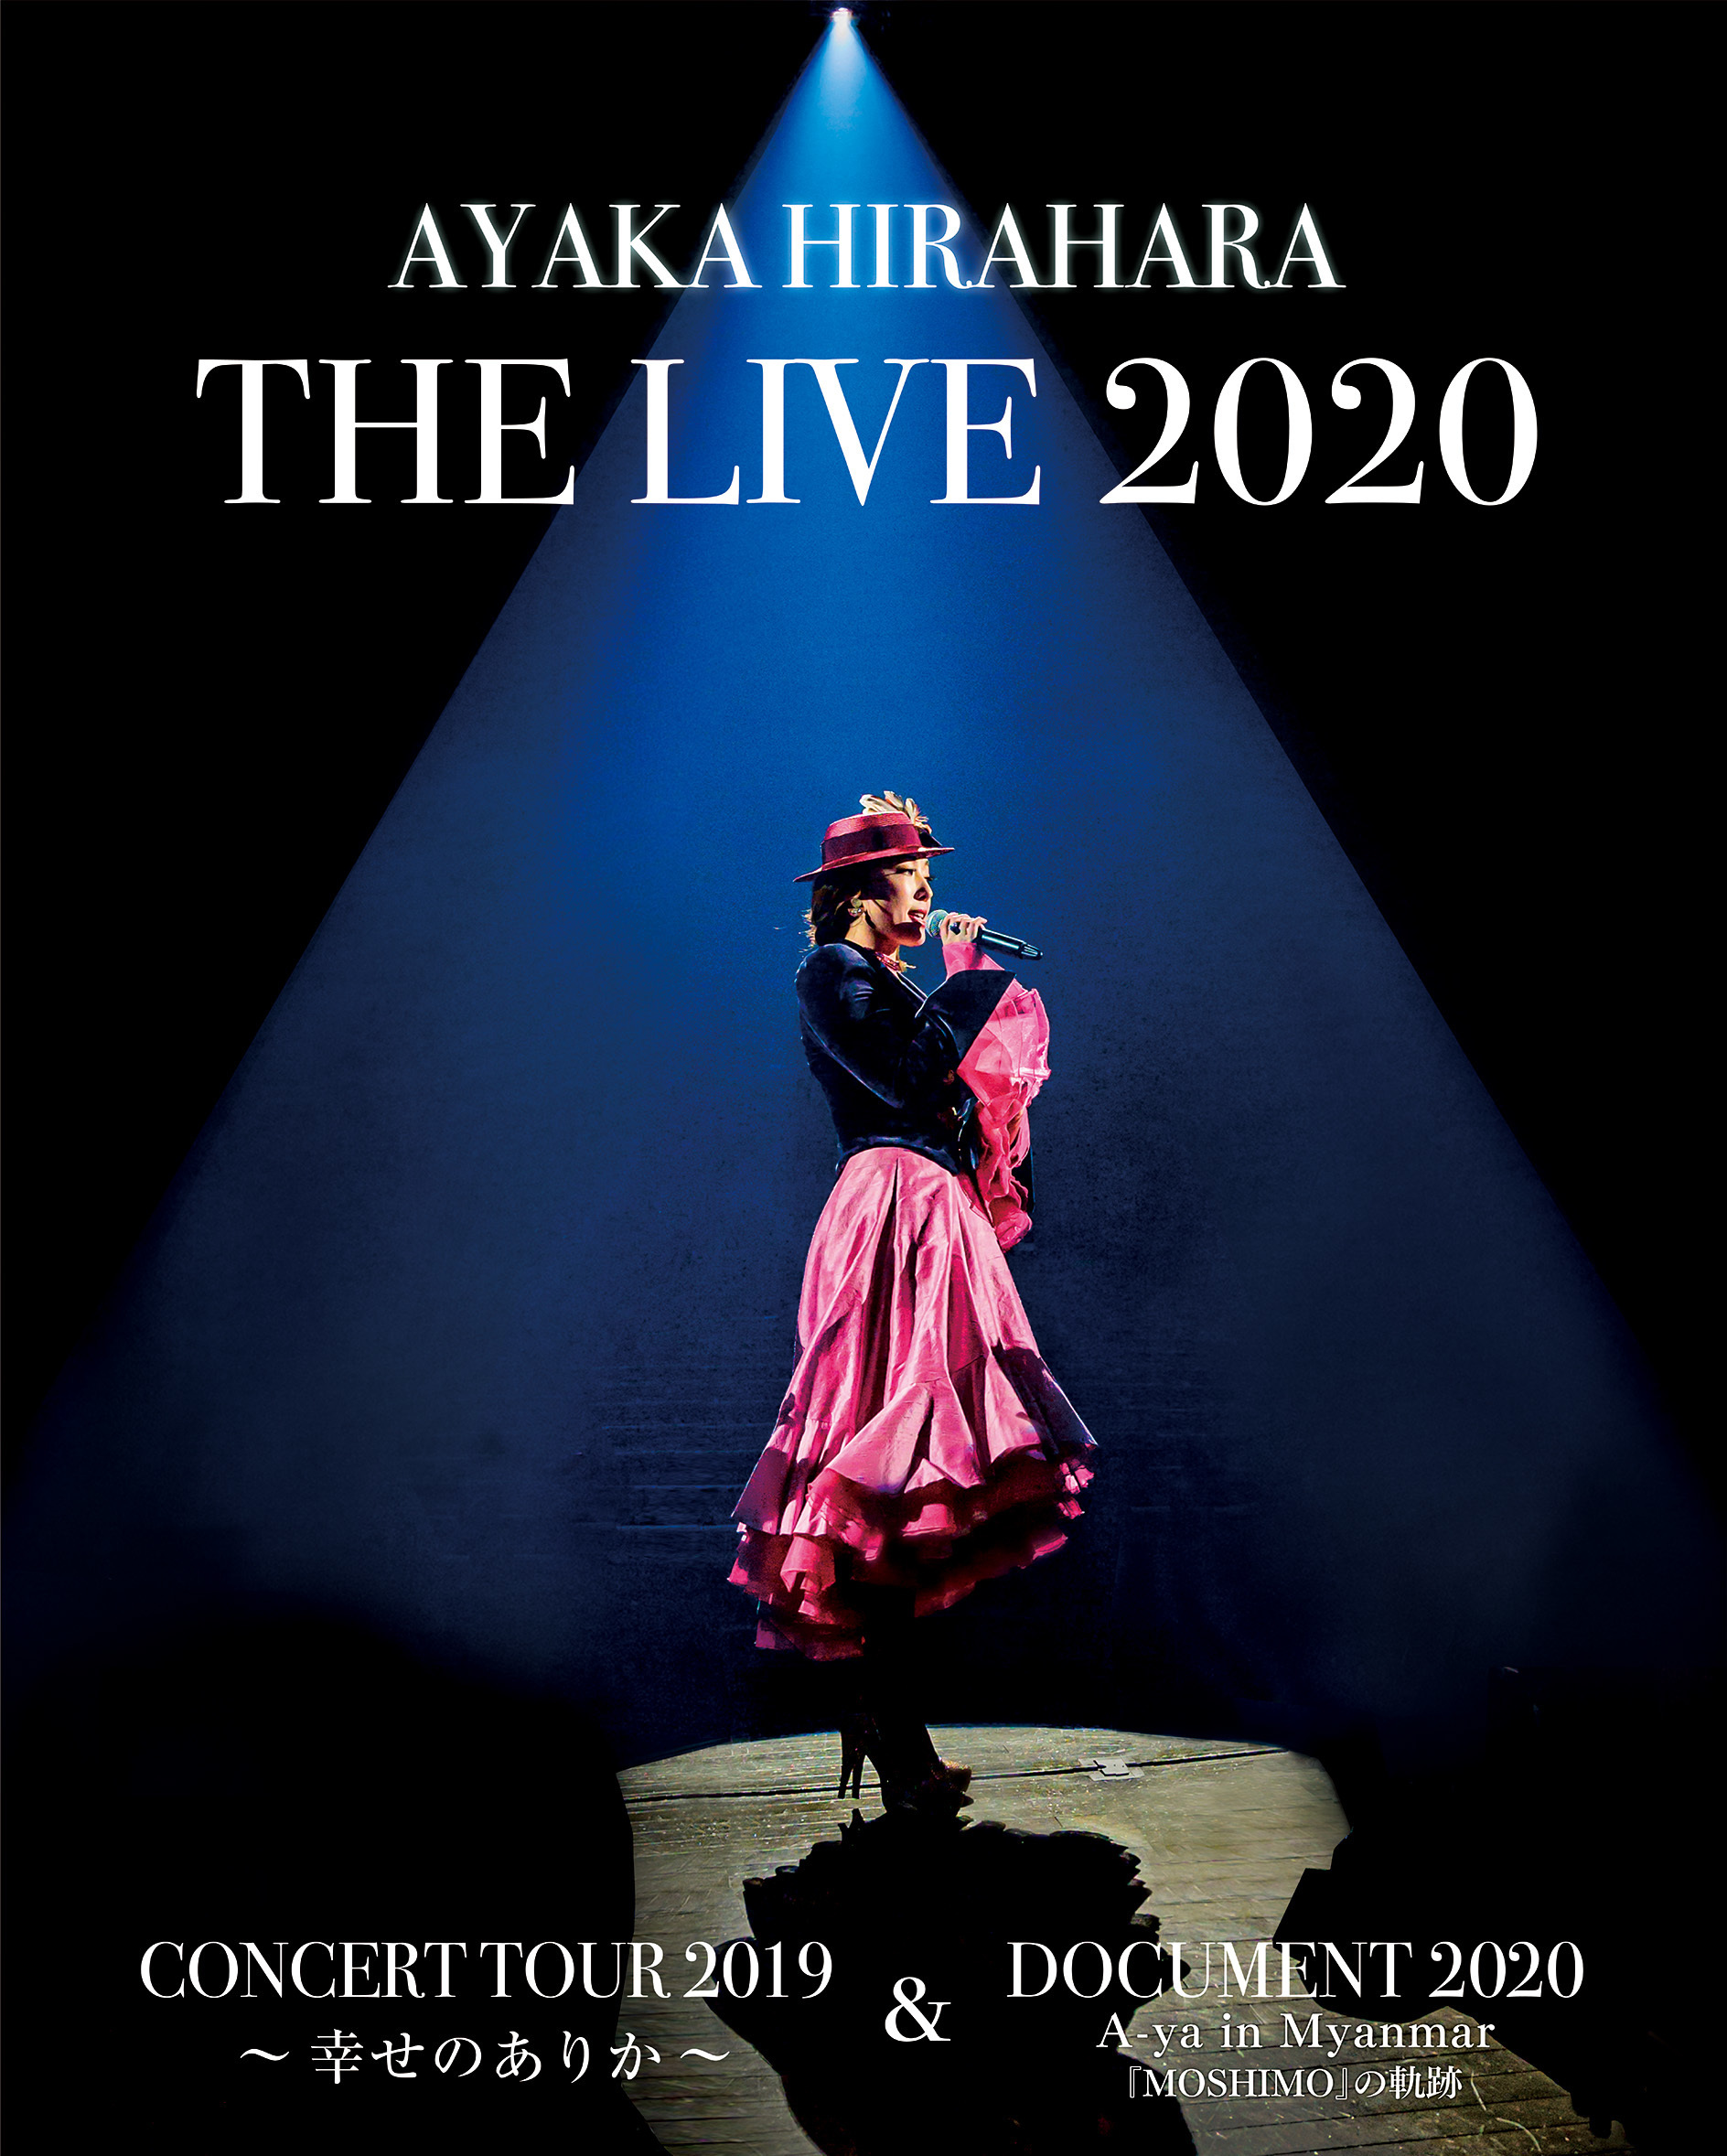 平原綾香 THE LIVE 2020 CONCERT TOUR 2019 〜 幸せのありか 〜 & DOCUMENT 2020 A-ya in Myanmar『MOSHIMO』の軌跡